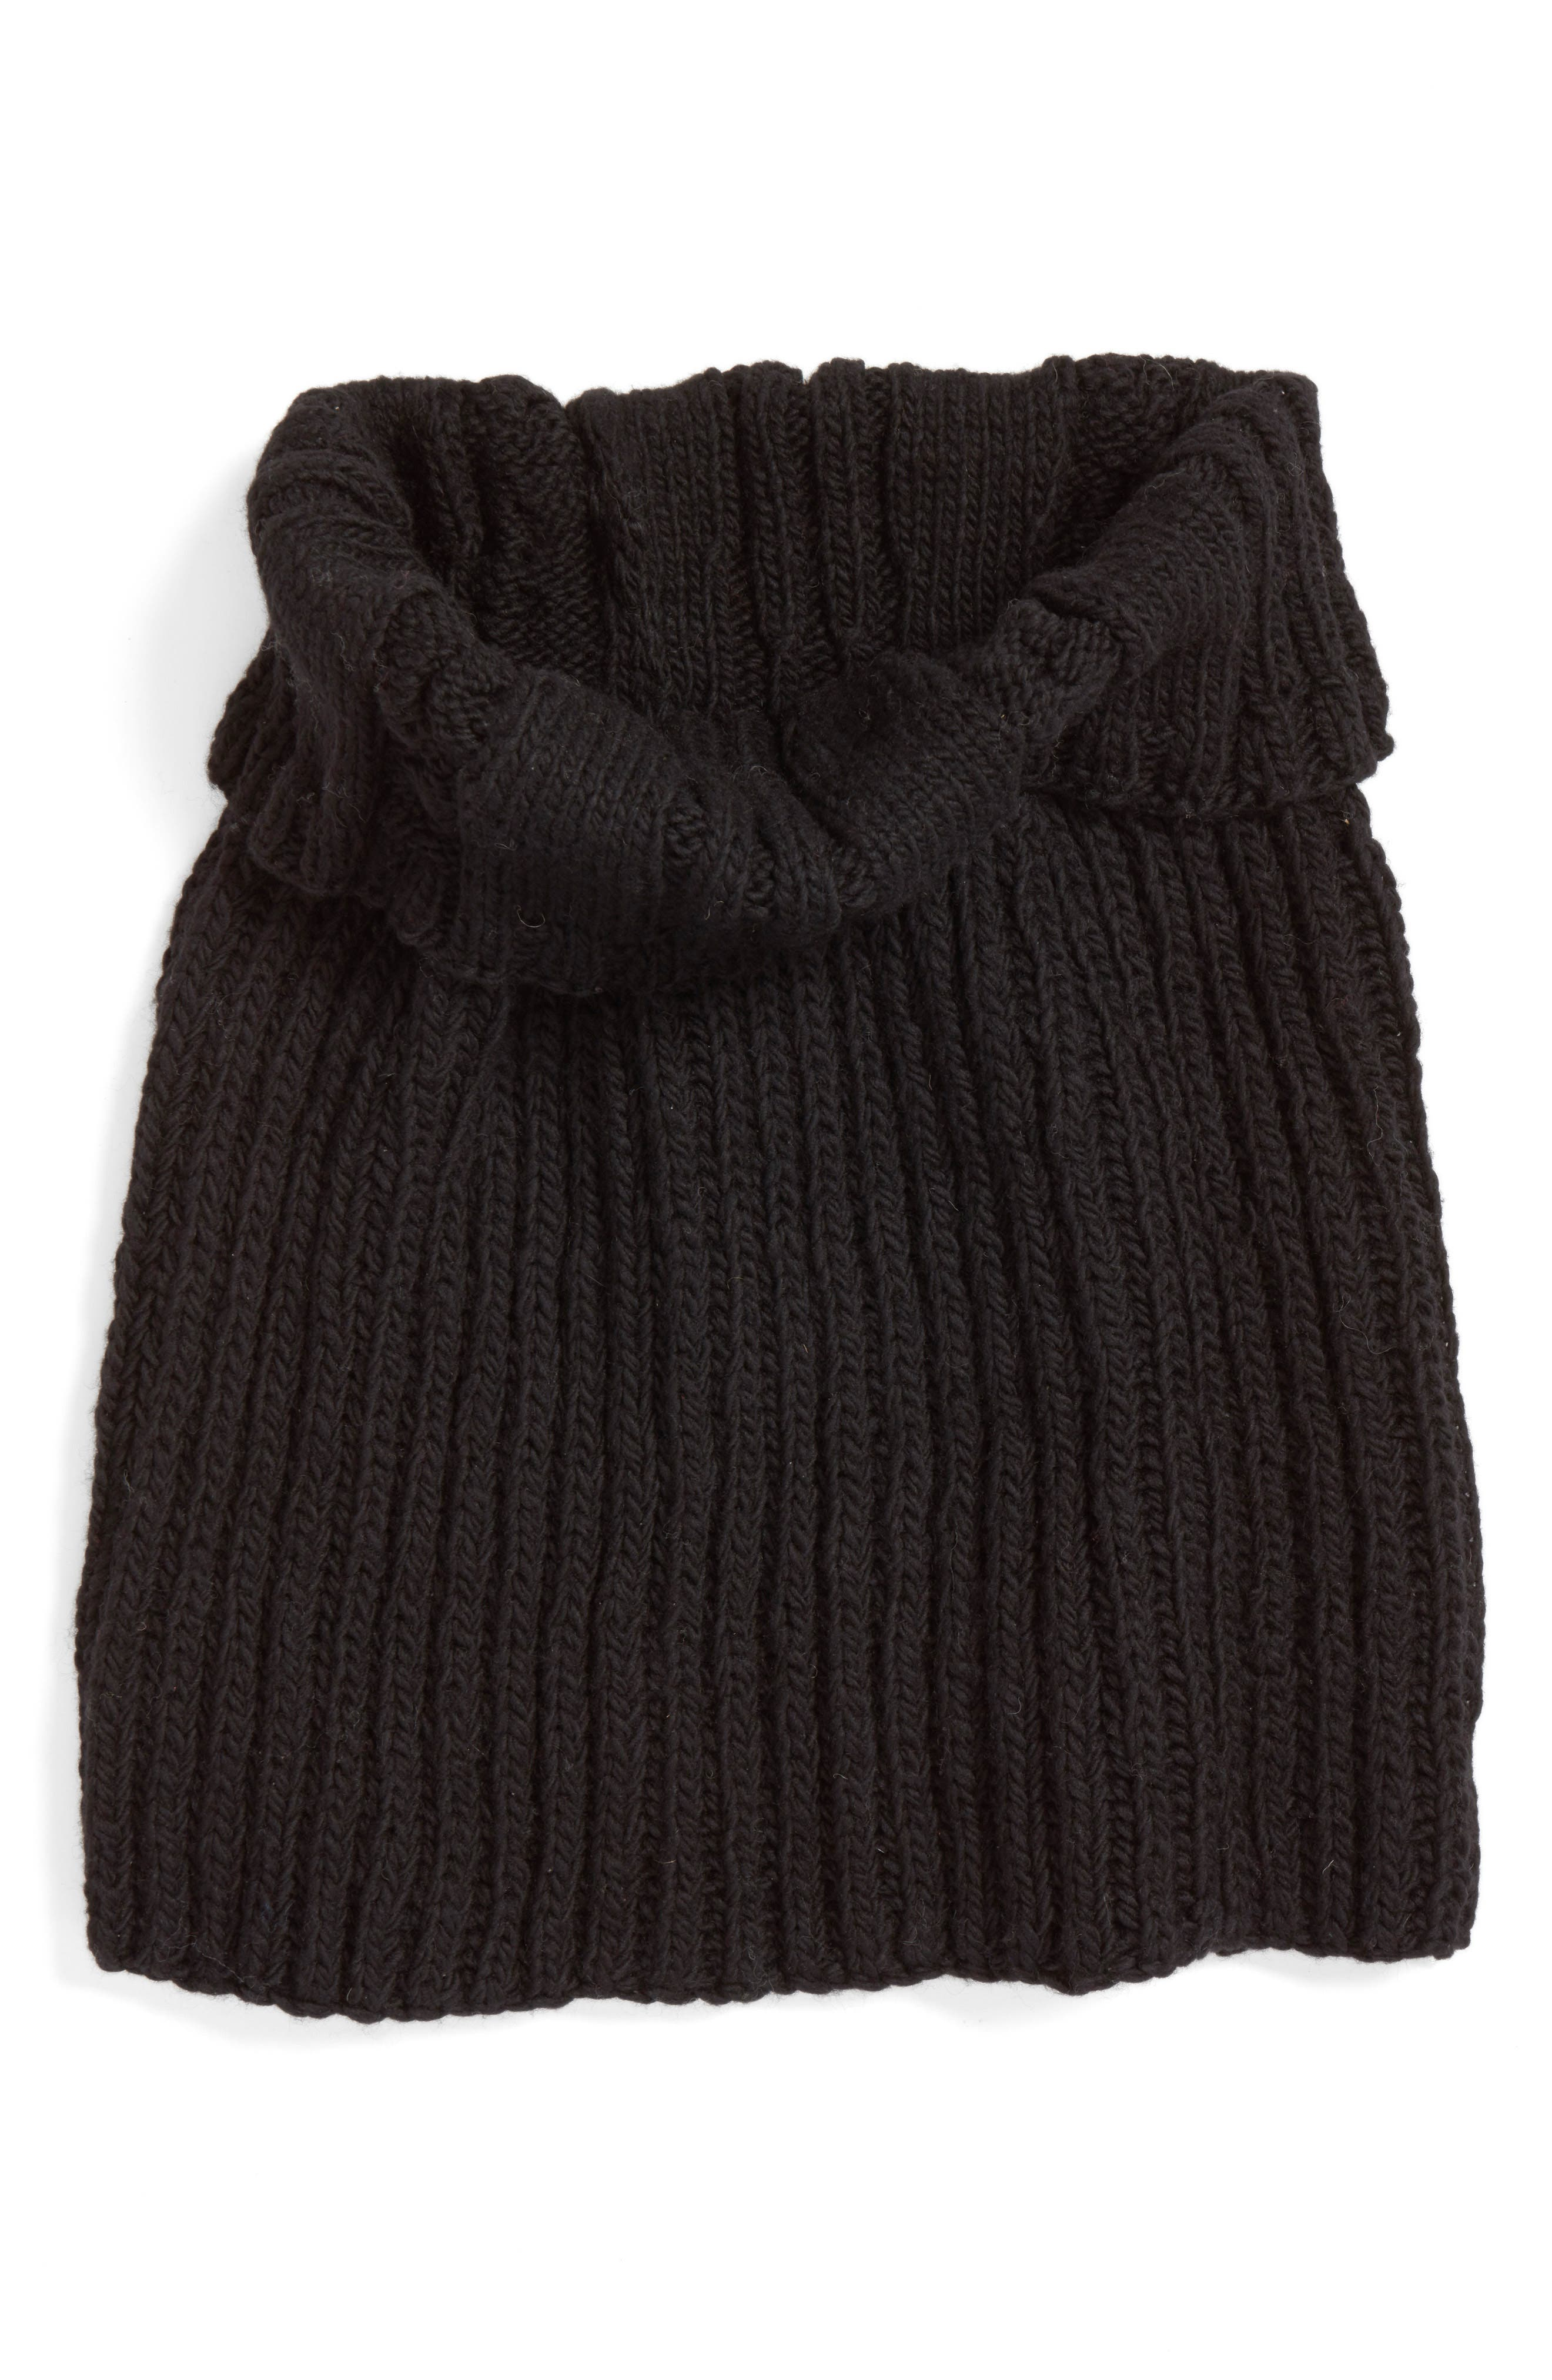 Oversize Cable Knit Wool Infinity Scarf,                             Alternate thumbnail 2, color,                             BLACK